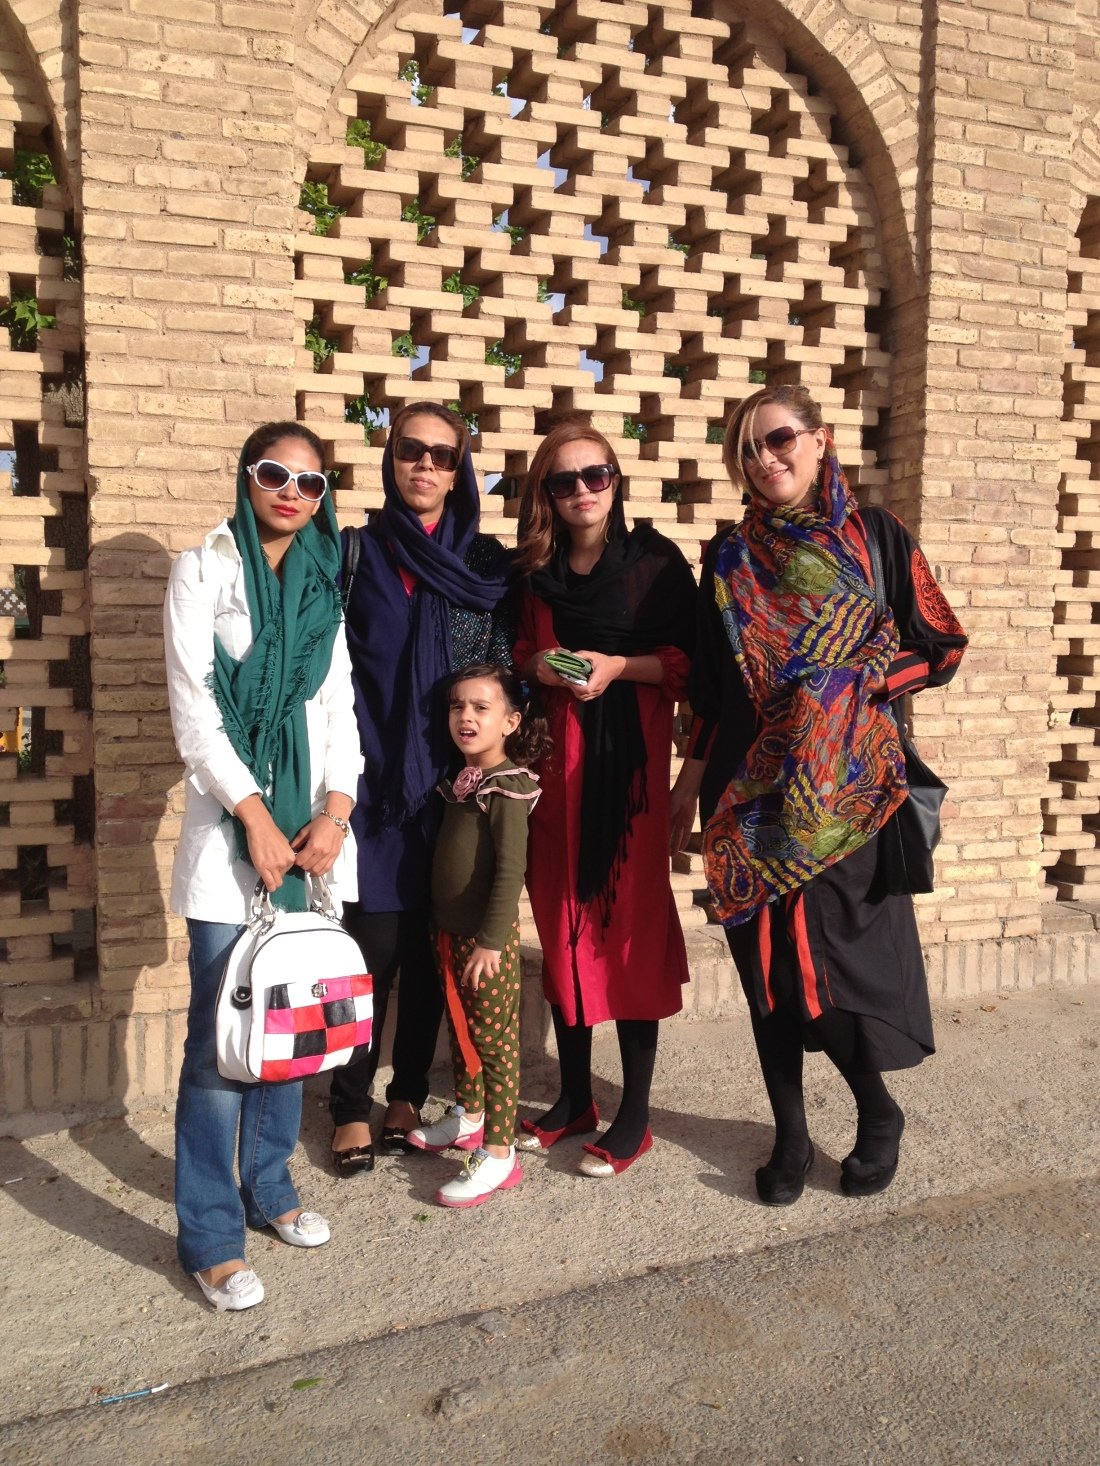 Fashion Muslimettes in Iran